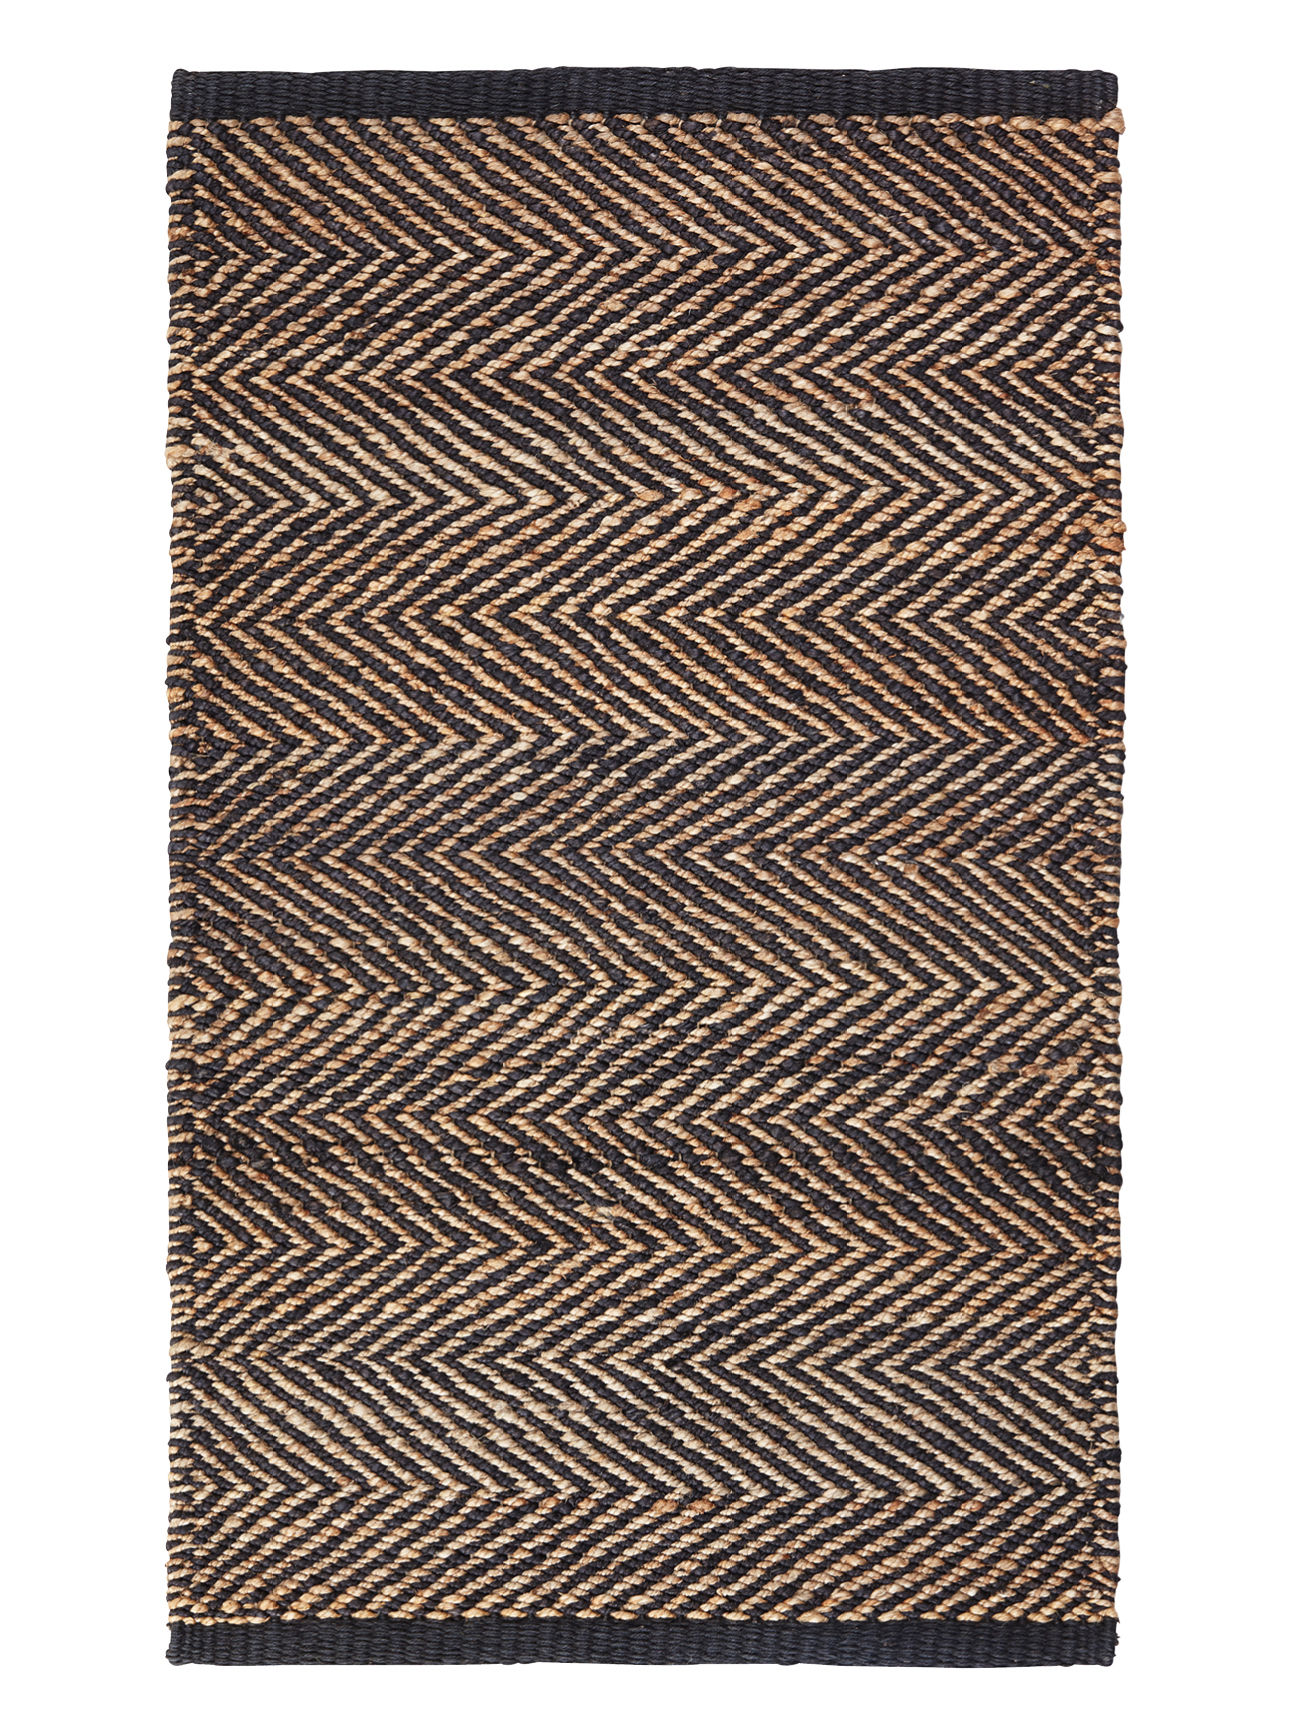 Serengeti Weave Mat - Charcoal & Natural